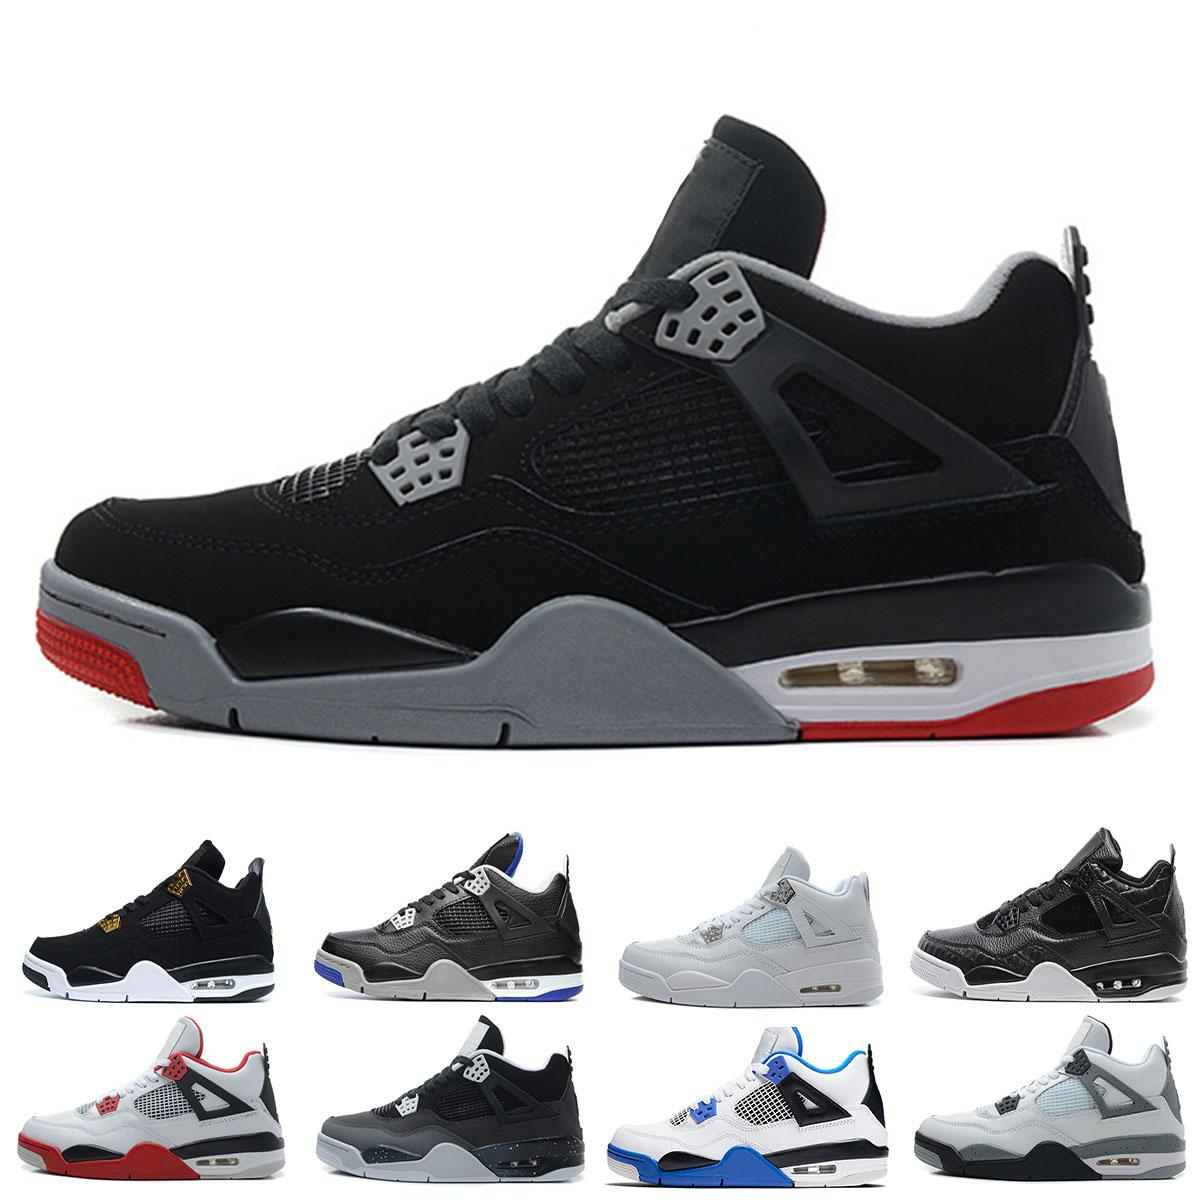 Cheap 4 4s men basketball shoes sneakers bred Fire Red Military Blue Pure Money Toro Bravo oreo Black Cat Sports Outdoor shoes